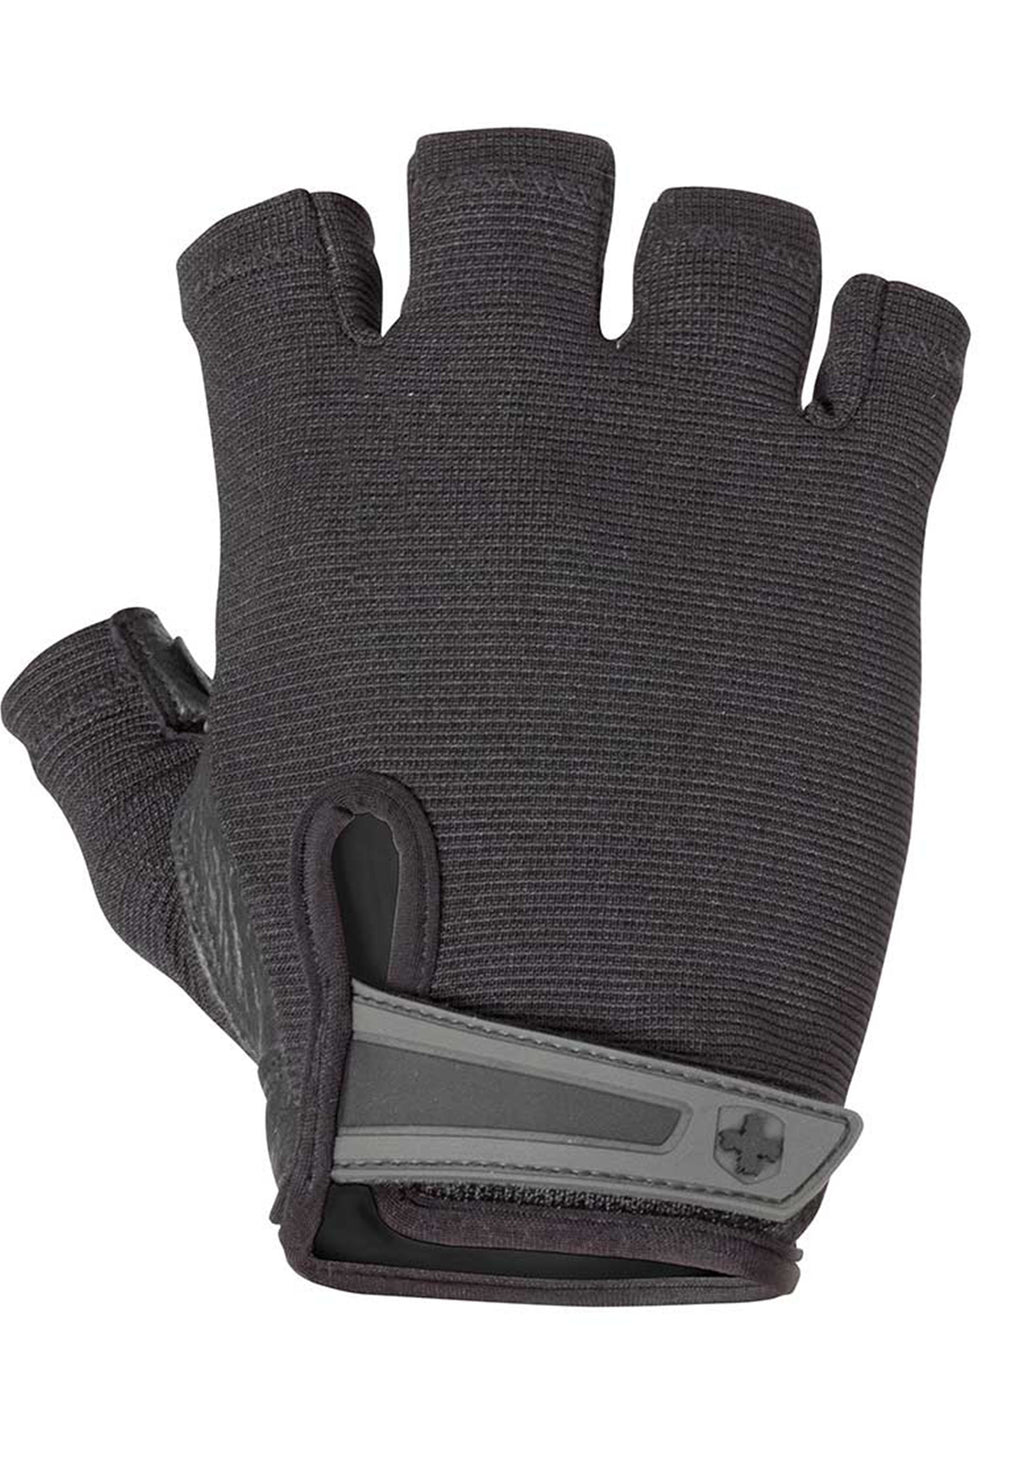 HARBINGER POWER GLOVES MENS